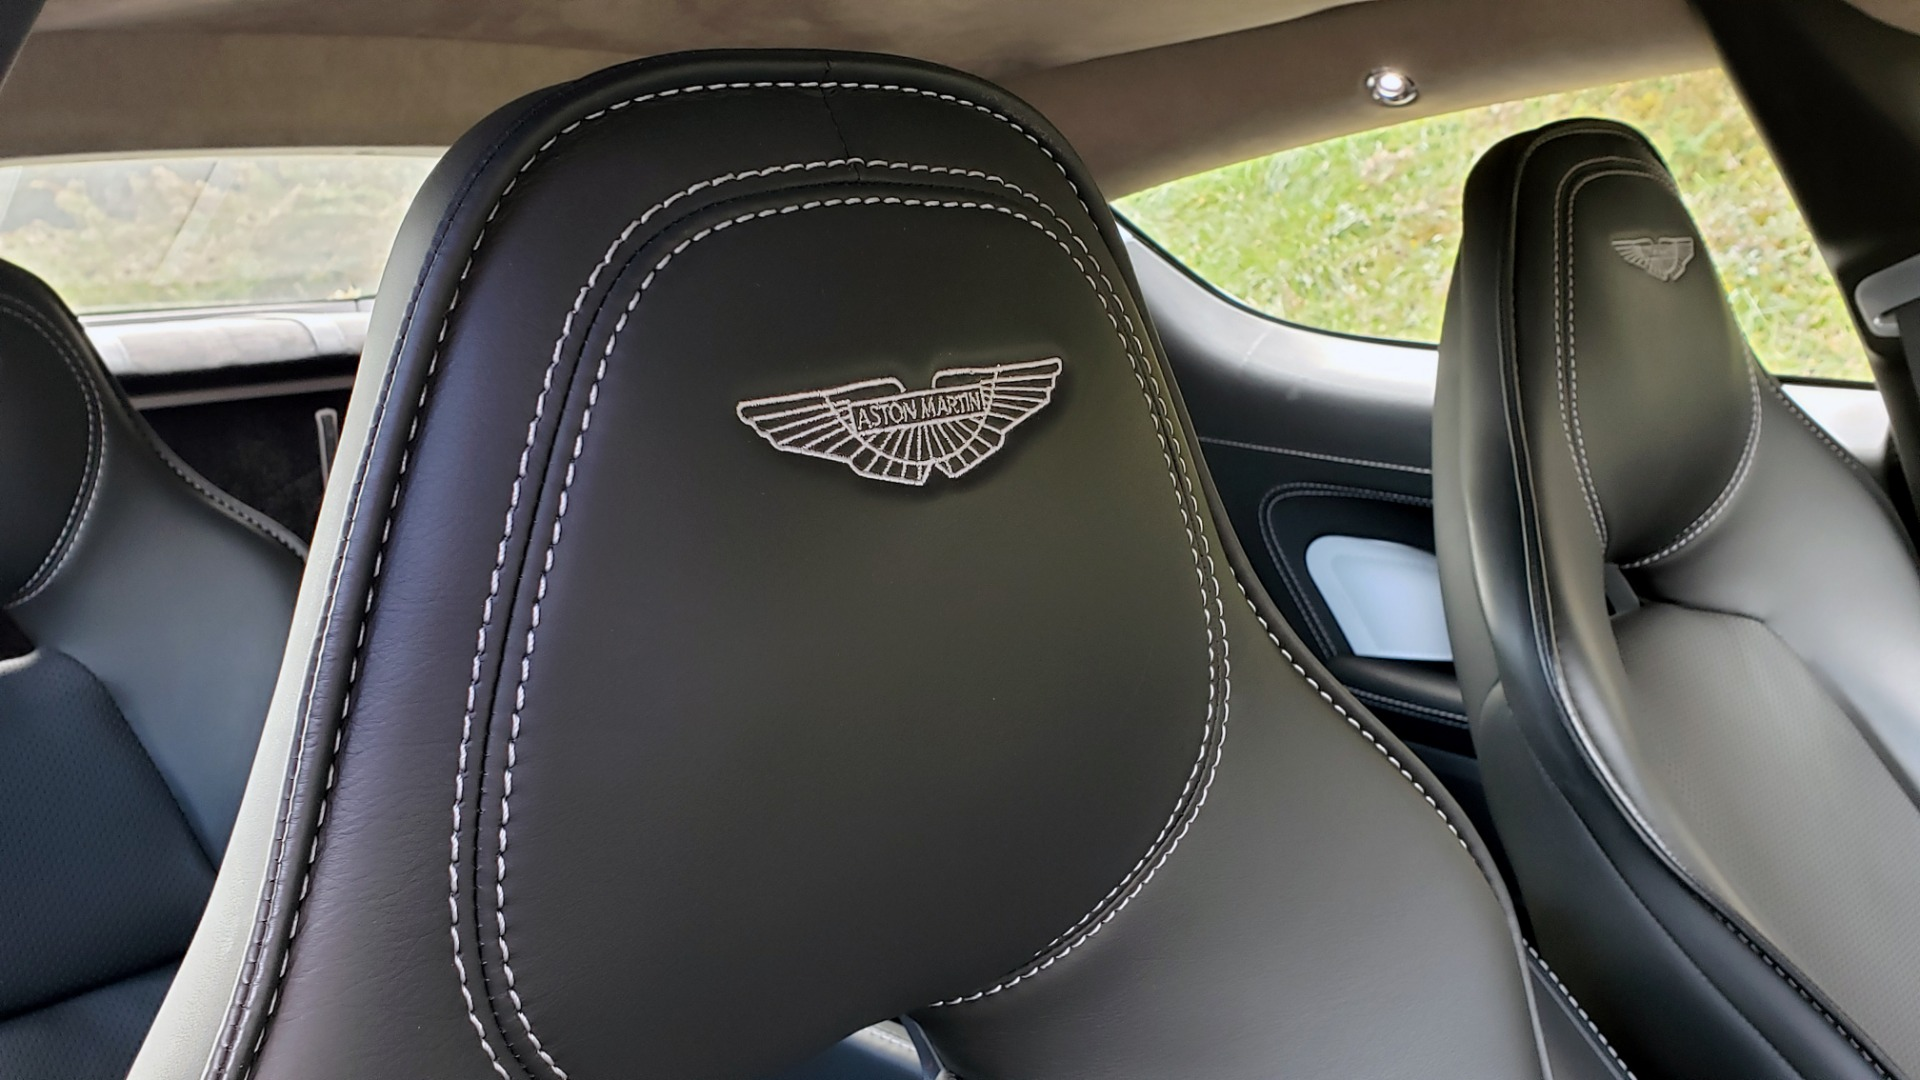 Used 2012 Aston Martin RAPIDE LUXURY 6.0L V12 / NAV / B&O SND / ENTERTAINMENT / REARVIEW for sale Sold at Formula Imports in Charlotte NC 28227 29